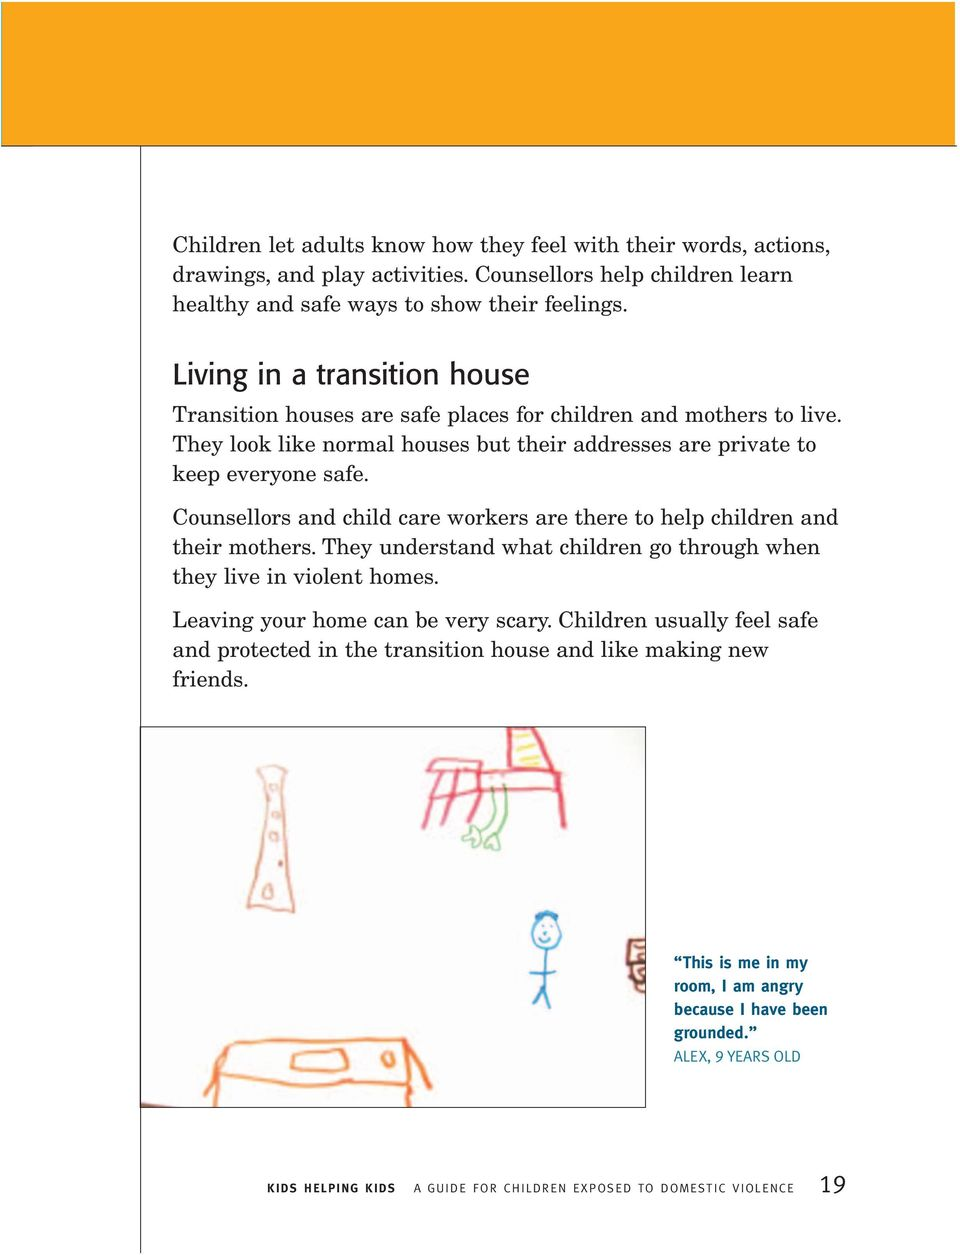 Counsellors and child care workers are there to help children and their mothers. They understand what children go through when they live in violent homes. Leaving your home can be very scary.